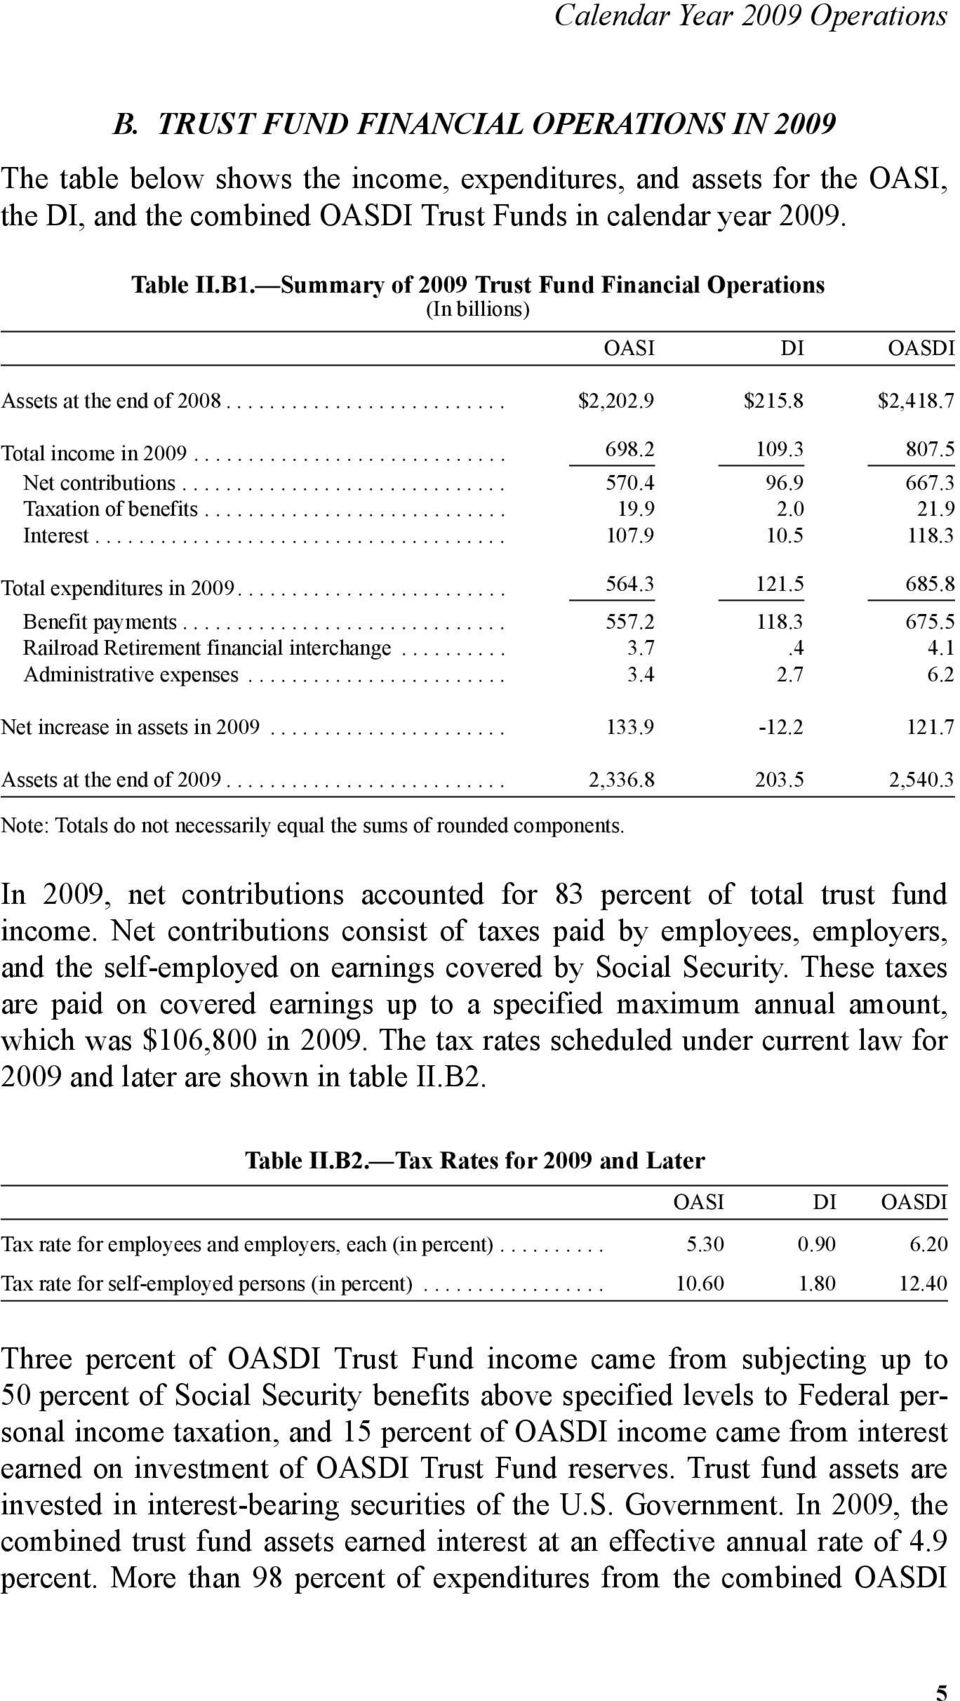 Summary of 2009 Trust Fund Financial Operations (In billions) Note: Totals do not necessarily equal the sums of rounded components. OASI DI OASDI Assets at the end of 2008.......................... $2,202.